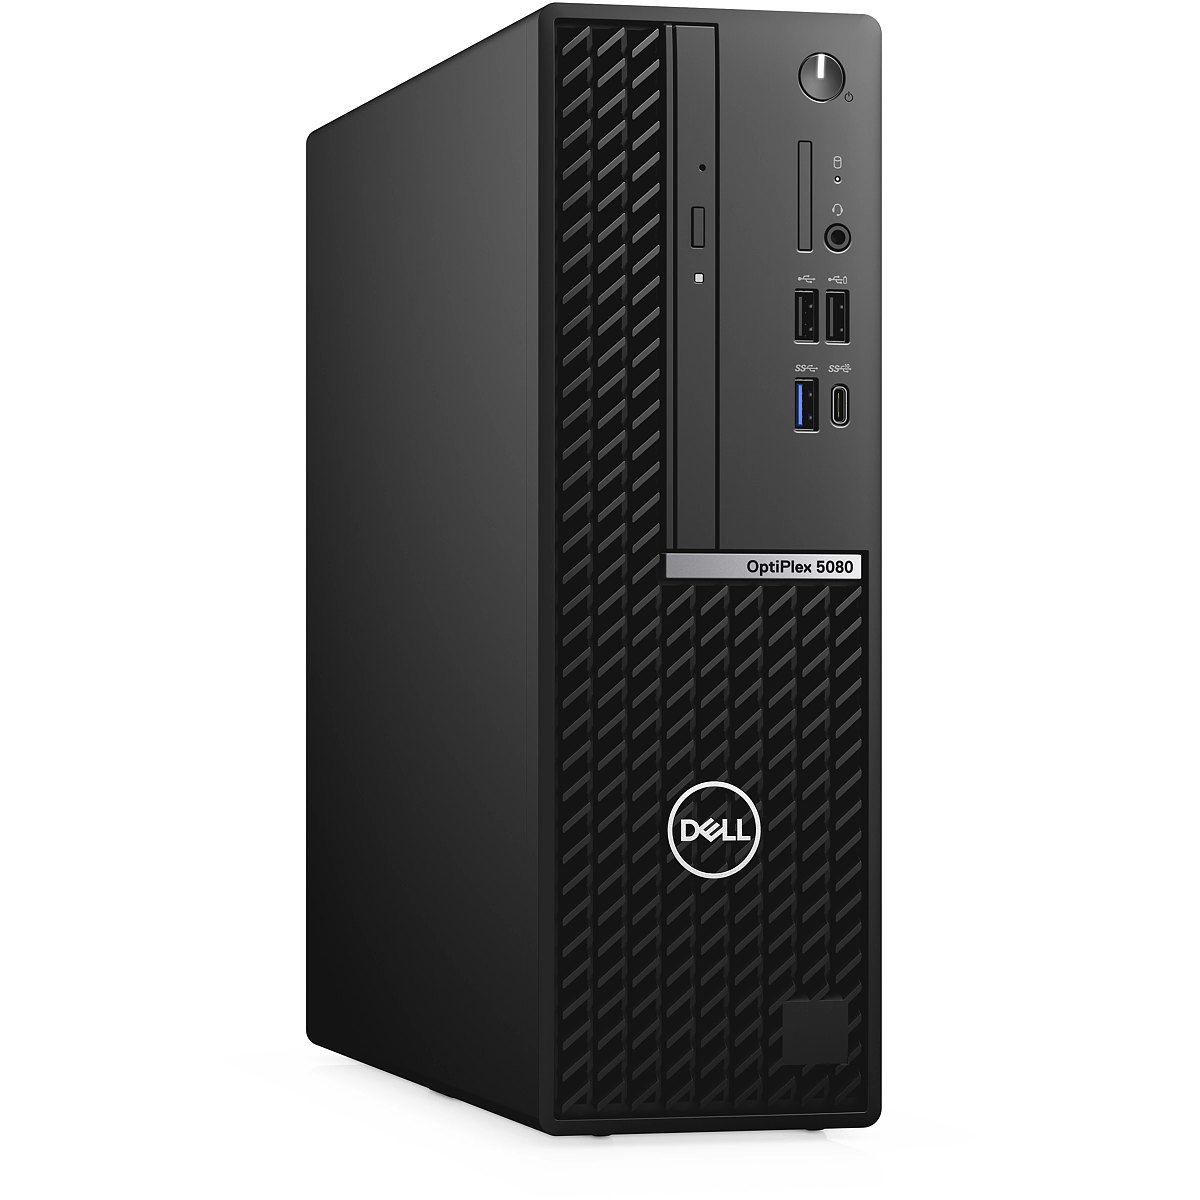 PC Dell OptiPlex 5080 SFF XCTO (42OT580002)/ Intel Core i5-10500 (3.10GHz, 12MB) / Ram 4GB DDR4/ SDD 256GB/ Intel UHD Graphics/ DVDRW/ Key + Mouse/ Ubuntu/ 3Yrs